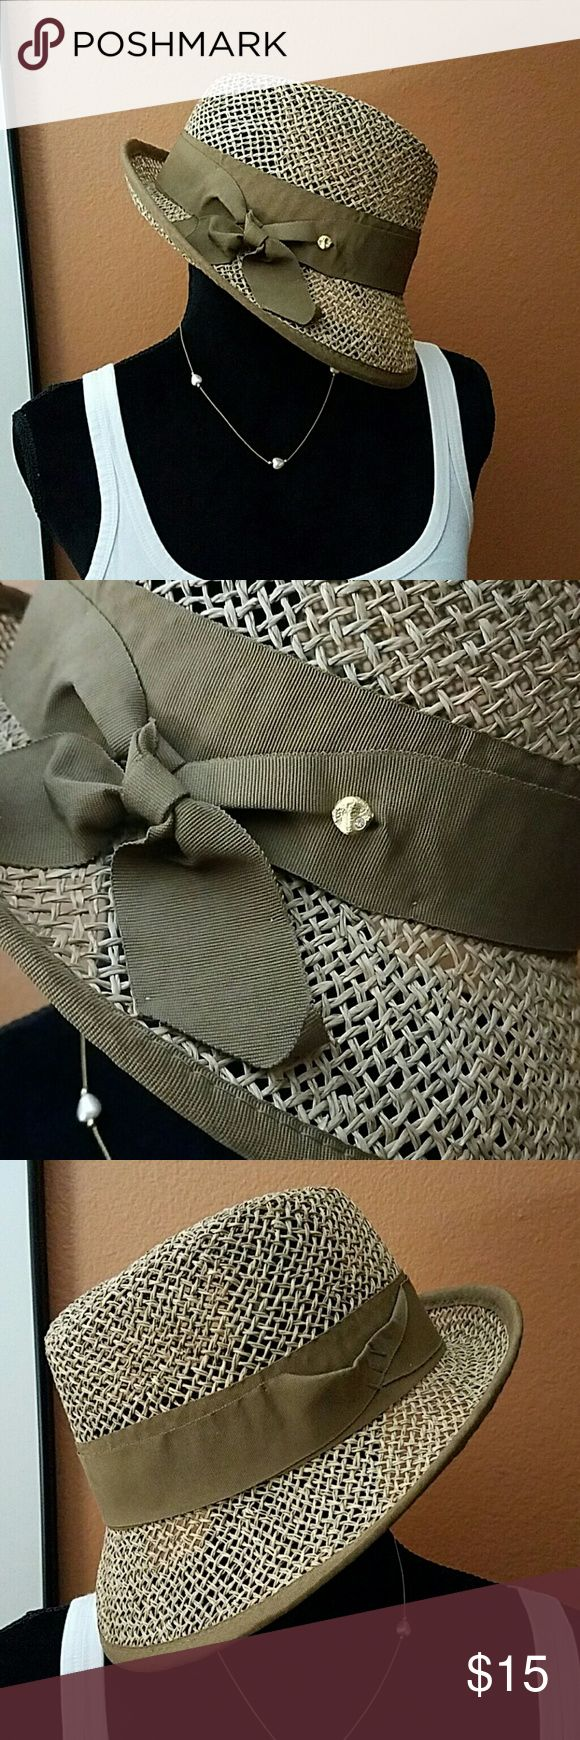 Awesome Straw Fedora with gold hat pin Straw Fedora..tag has been removed so I don't know the designer..very well made..excellent like new condition! Accessories Hats